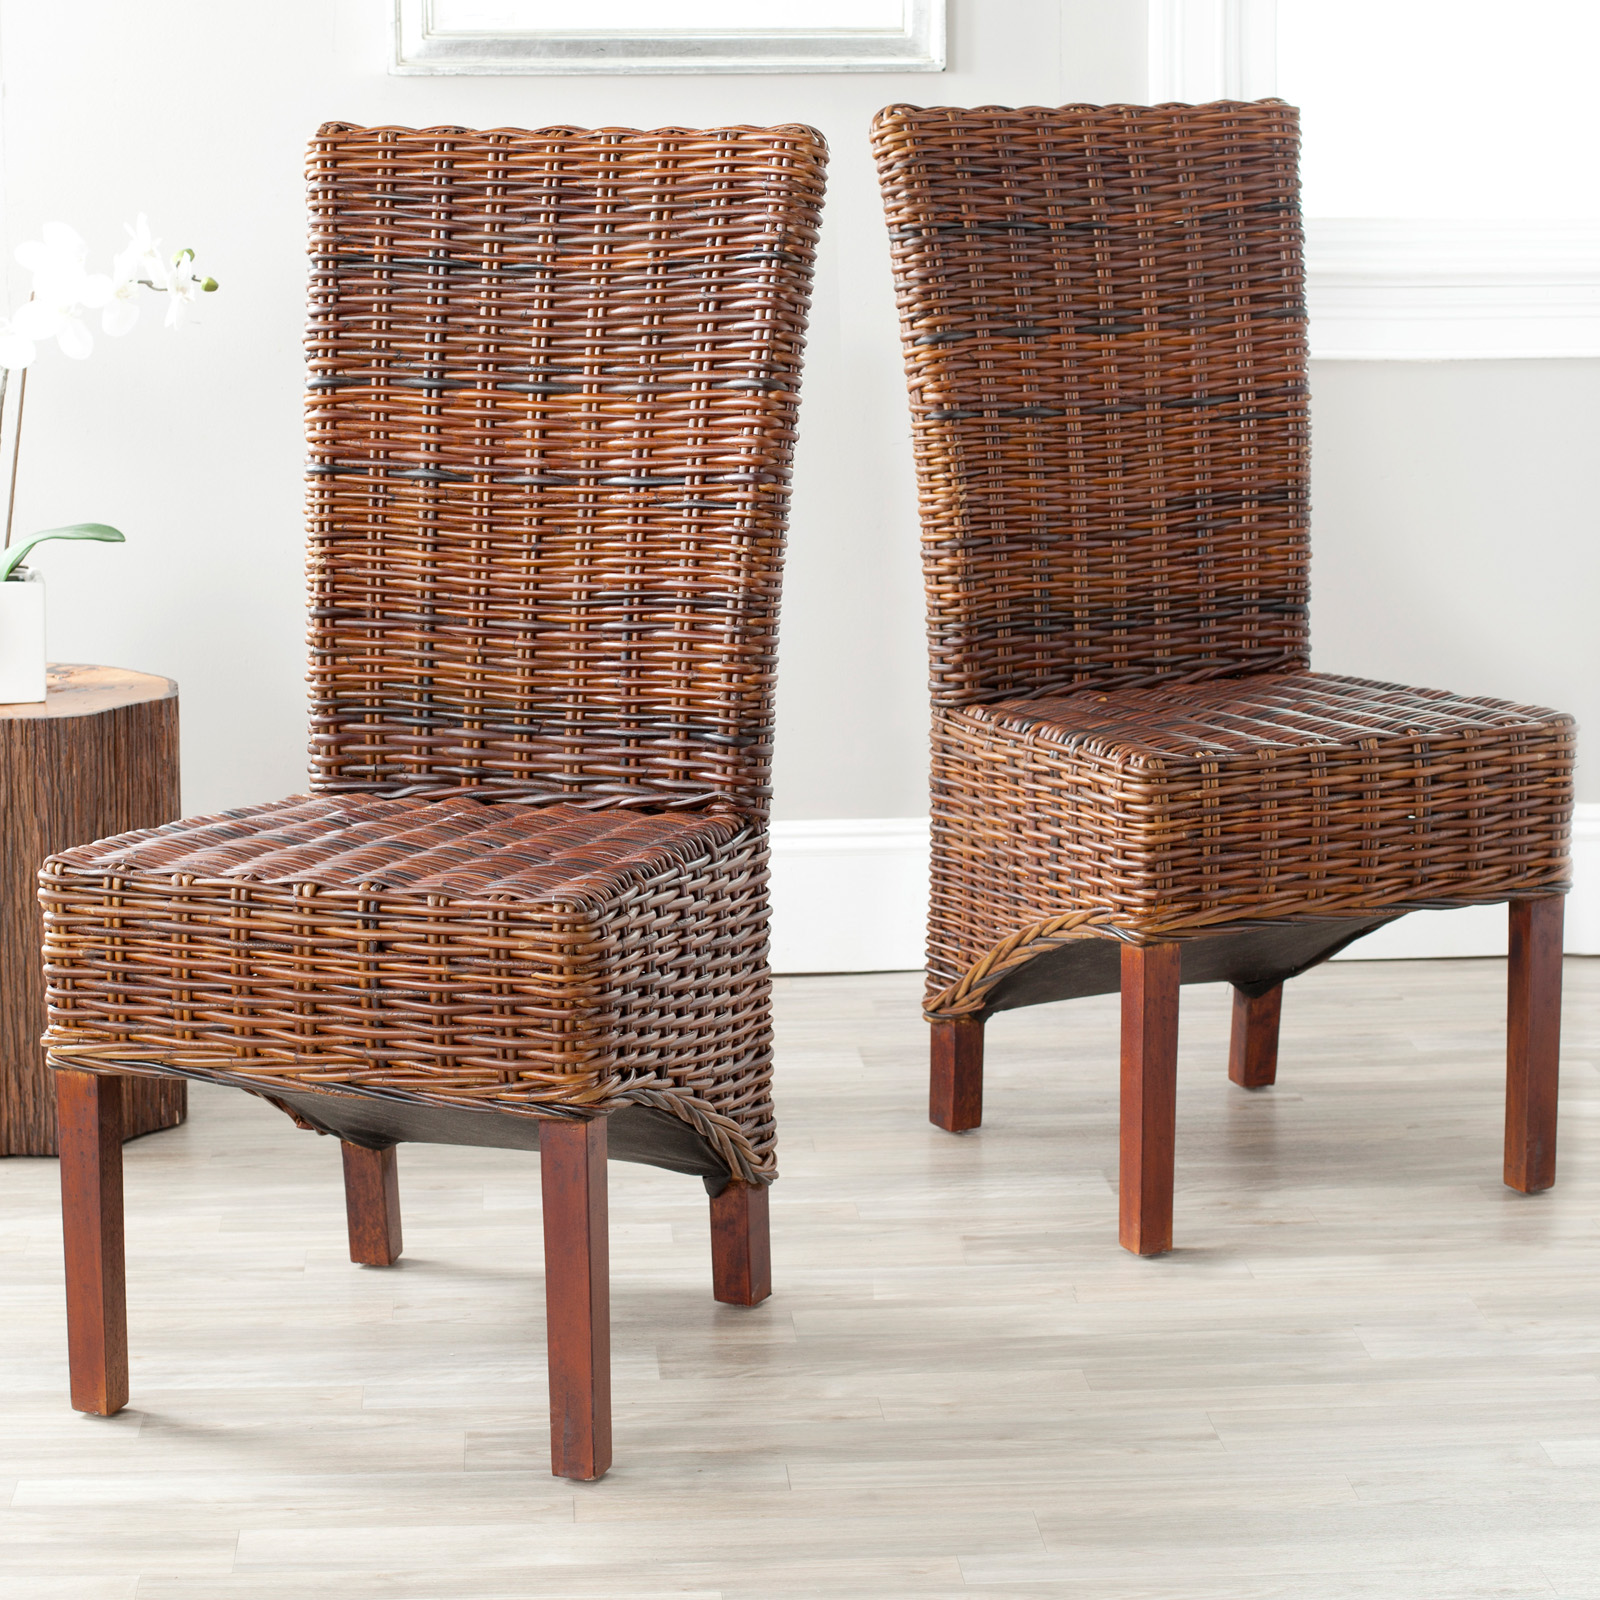 Cane Dining Chairs Safavieh Ridge Wicker Dining Side Chairs Set Of 2